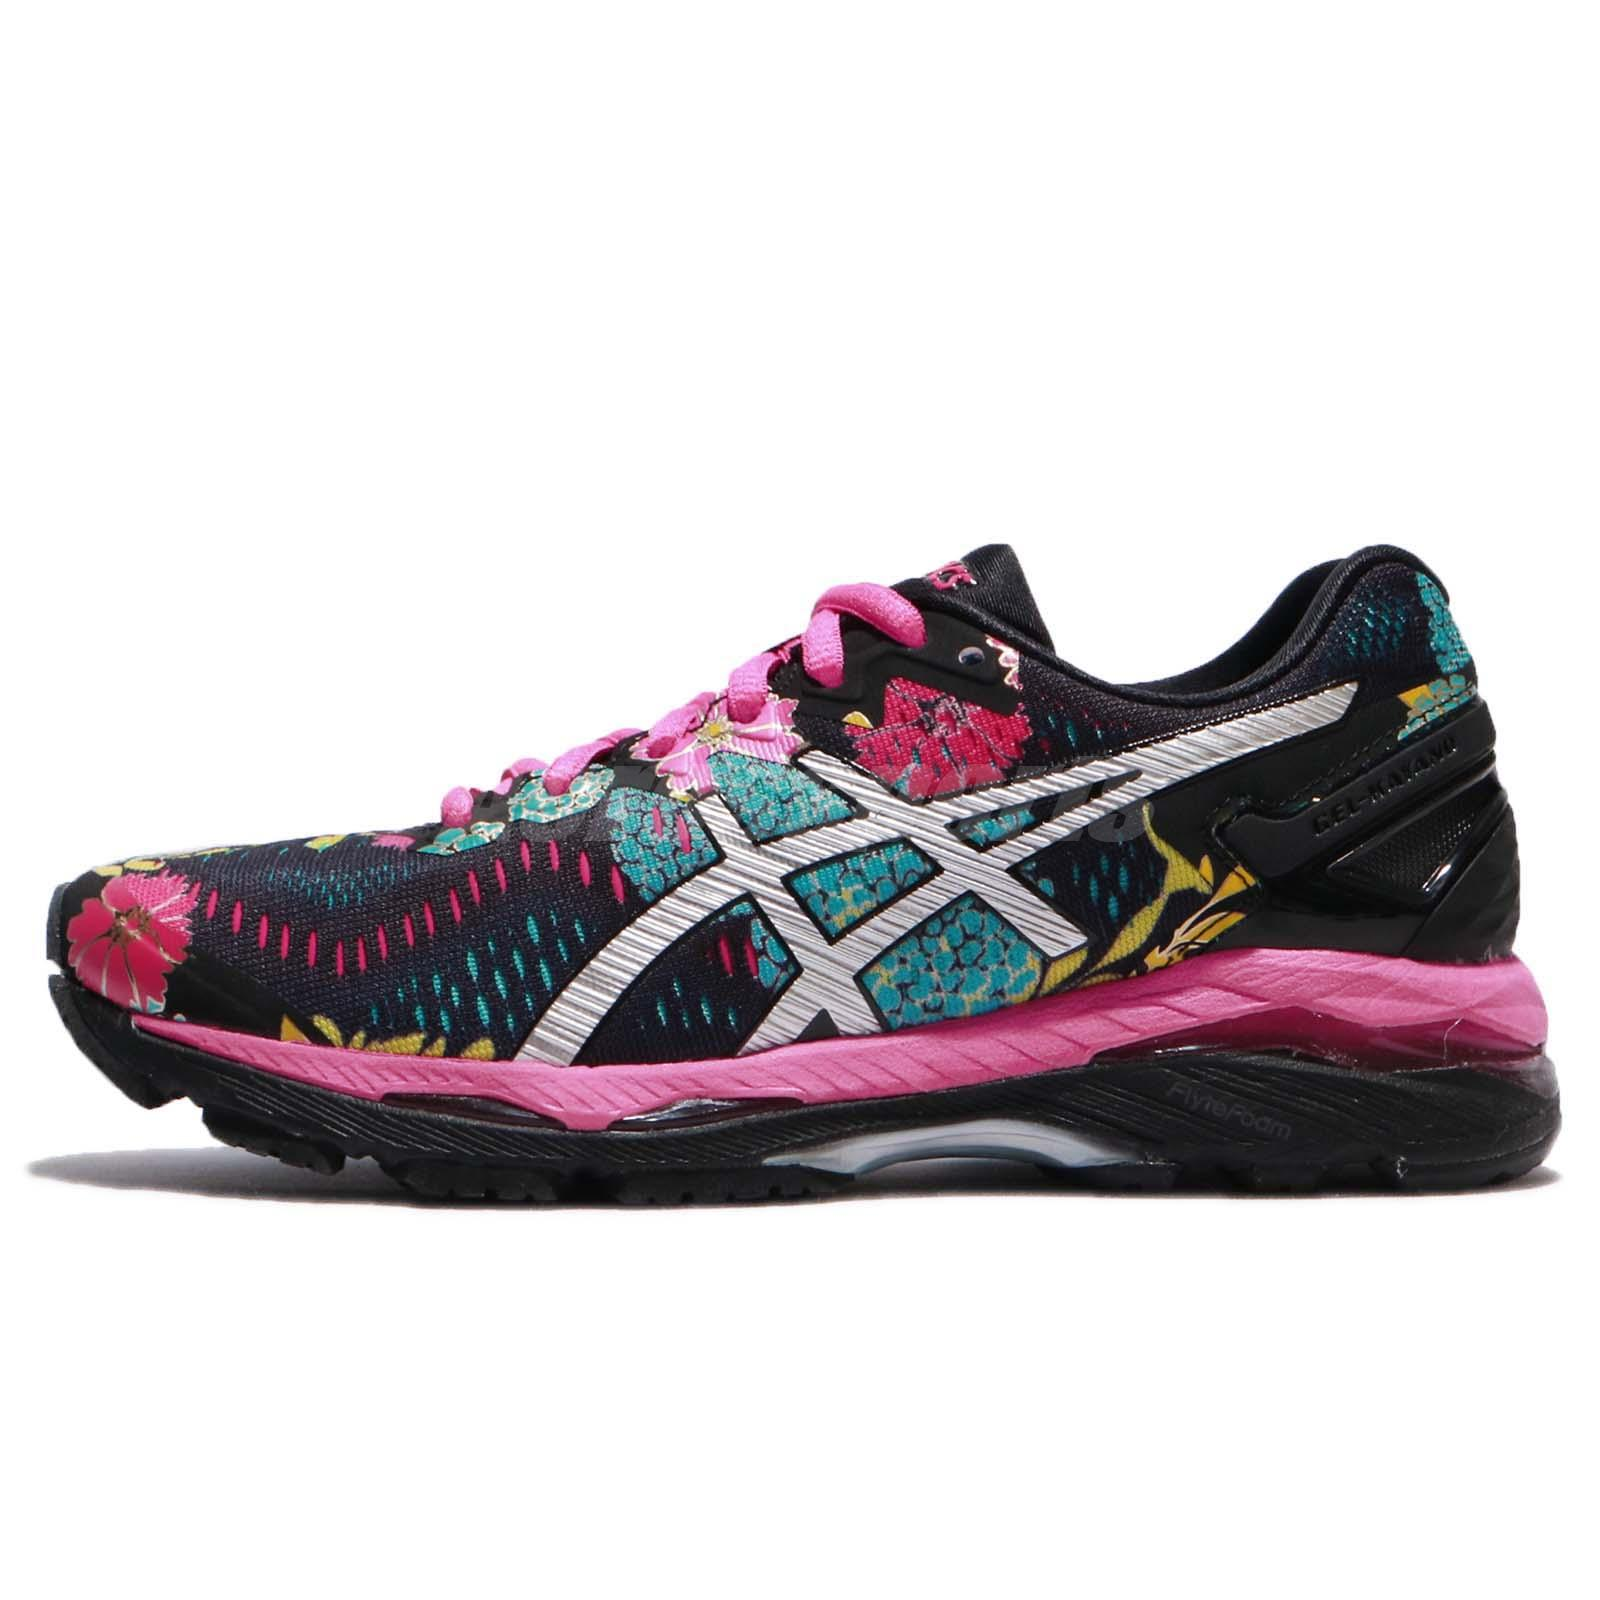 82206cb5031 ... germany asics gel kayano 23 black silver pink glow women running shoe  sneaker t6a5n 9093 6f794